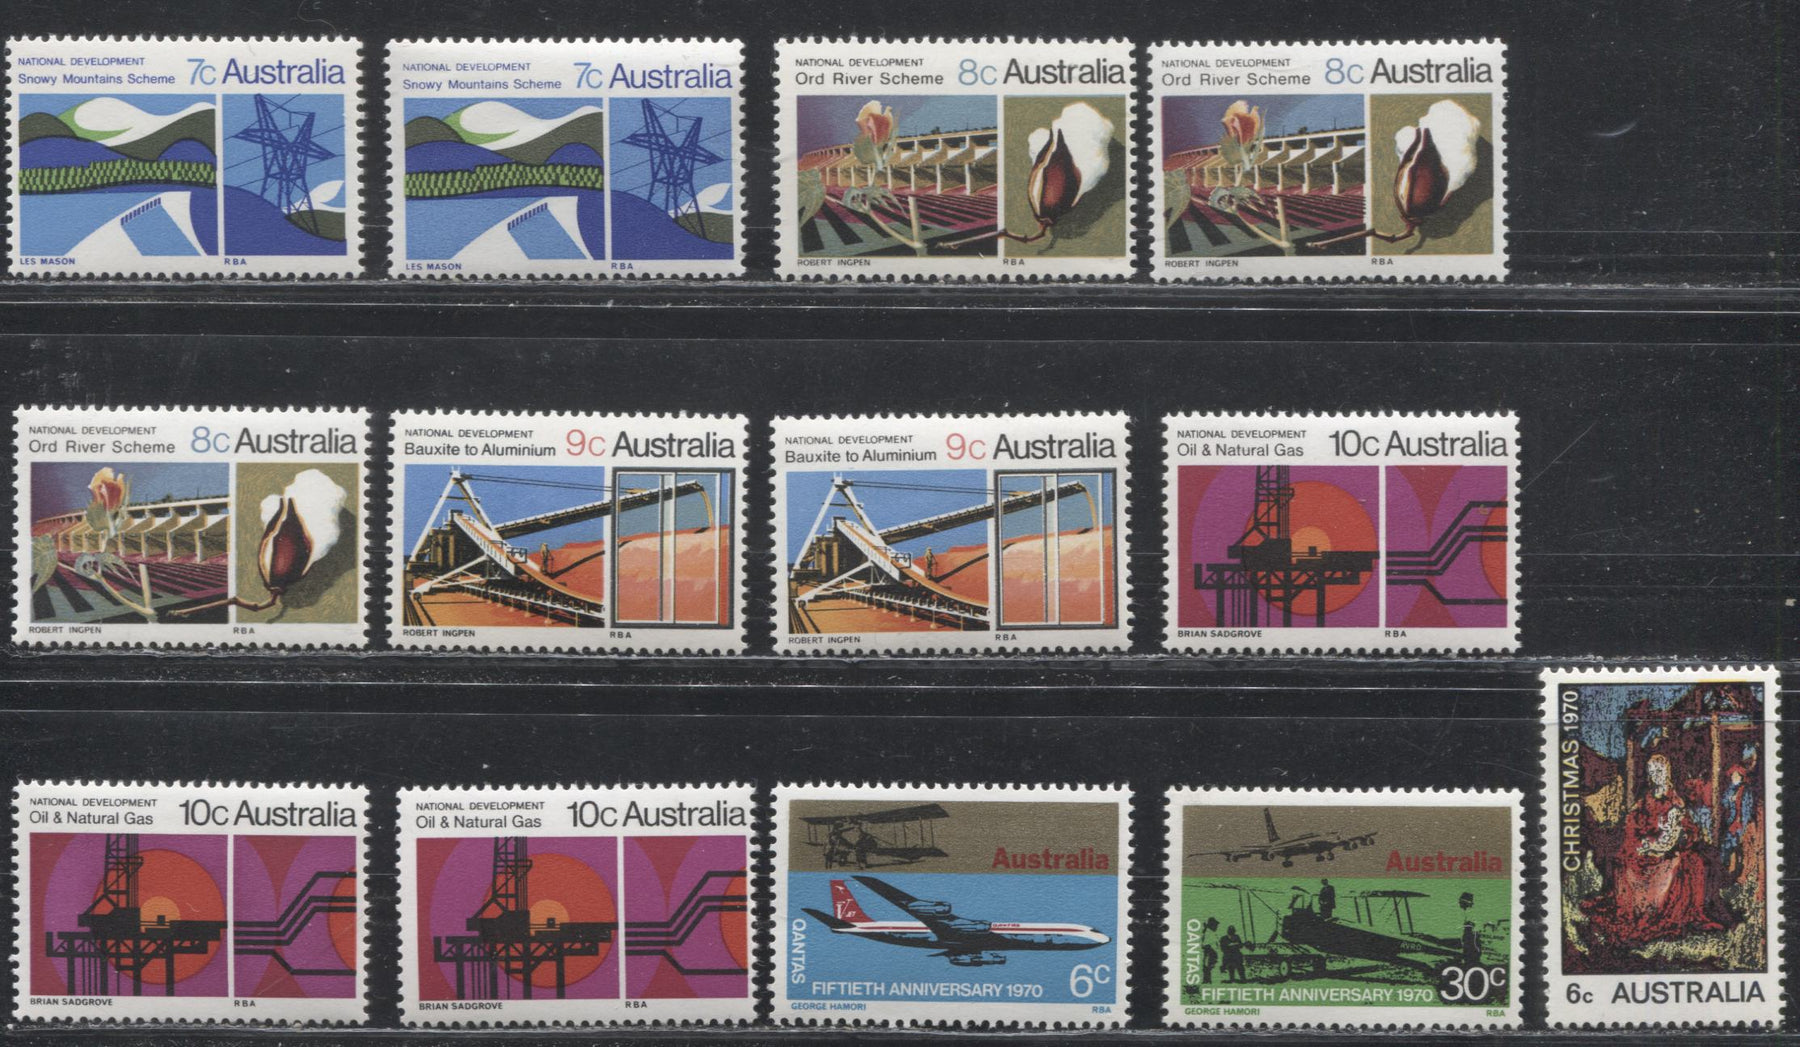 Australia #483/492 (SG#469/478) 1970 Commemoratives, A Specialized Lot of 13 VFNH Mint Stamps